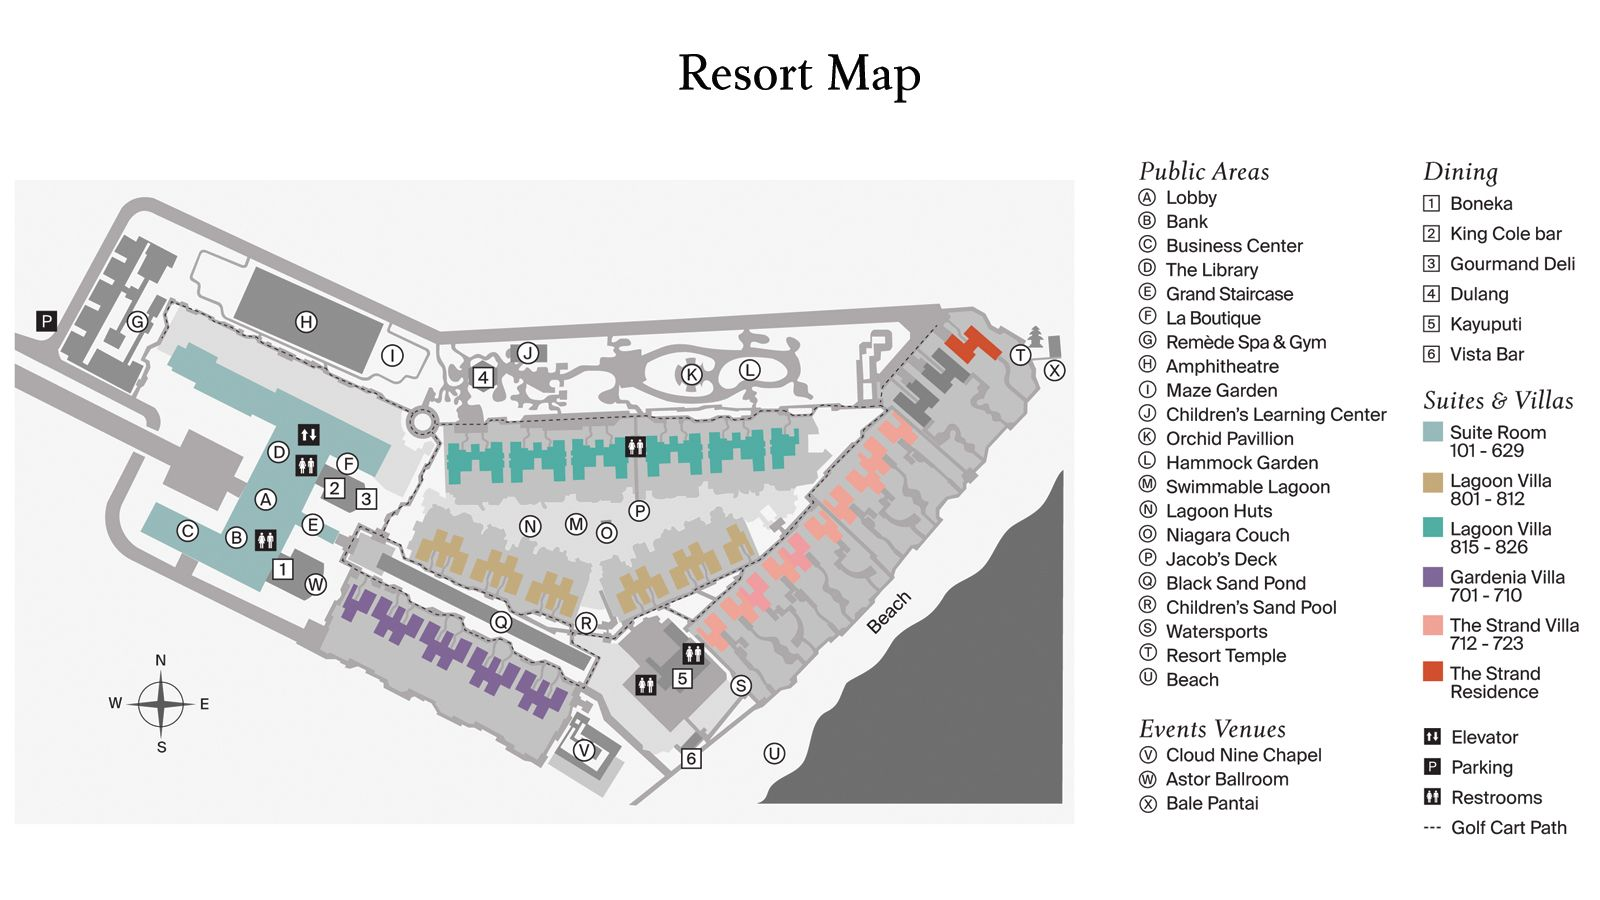 Resort Map - The St. Regis Bali Resort